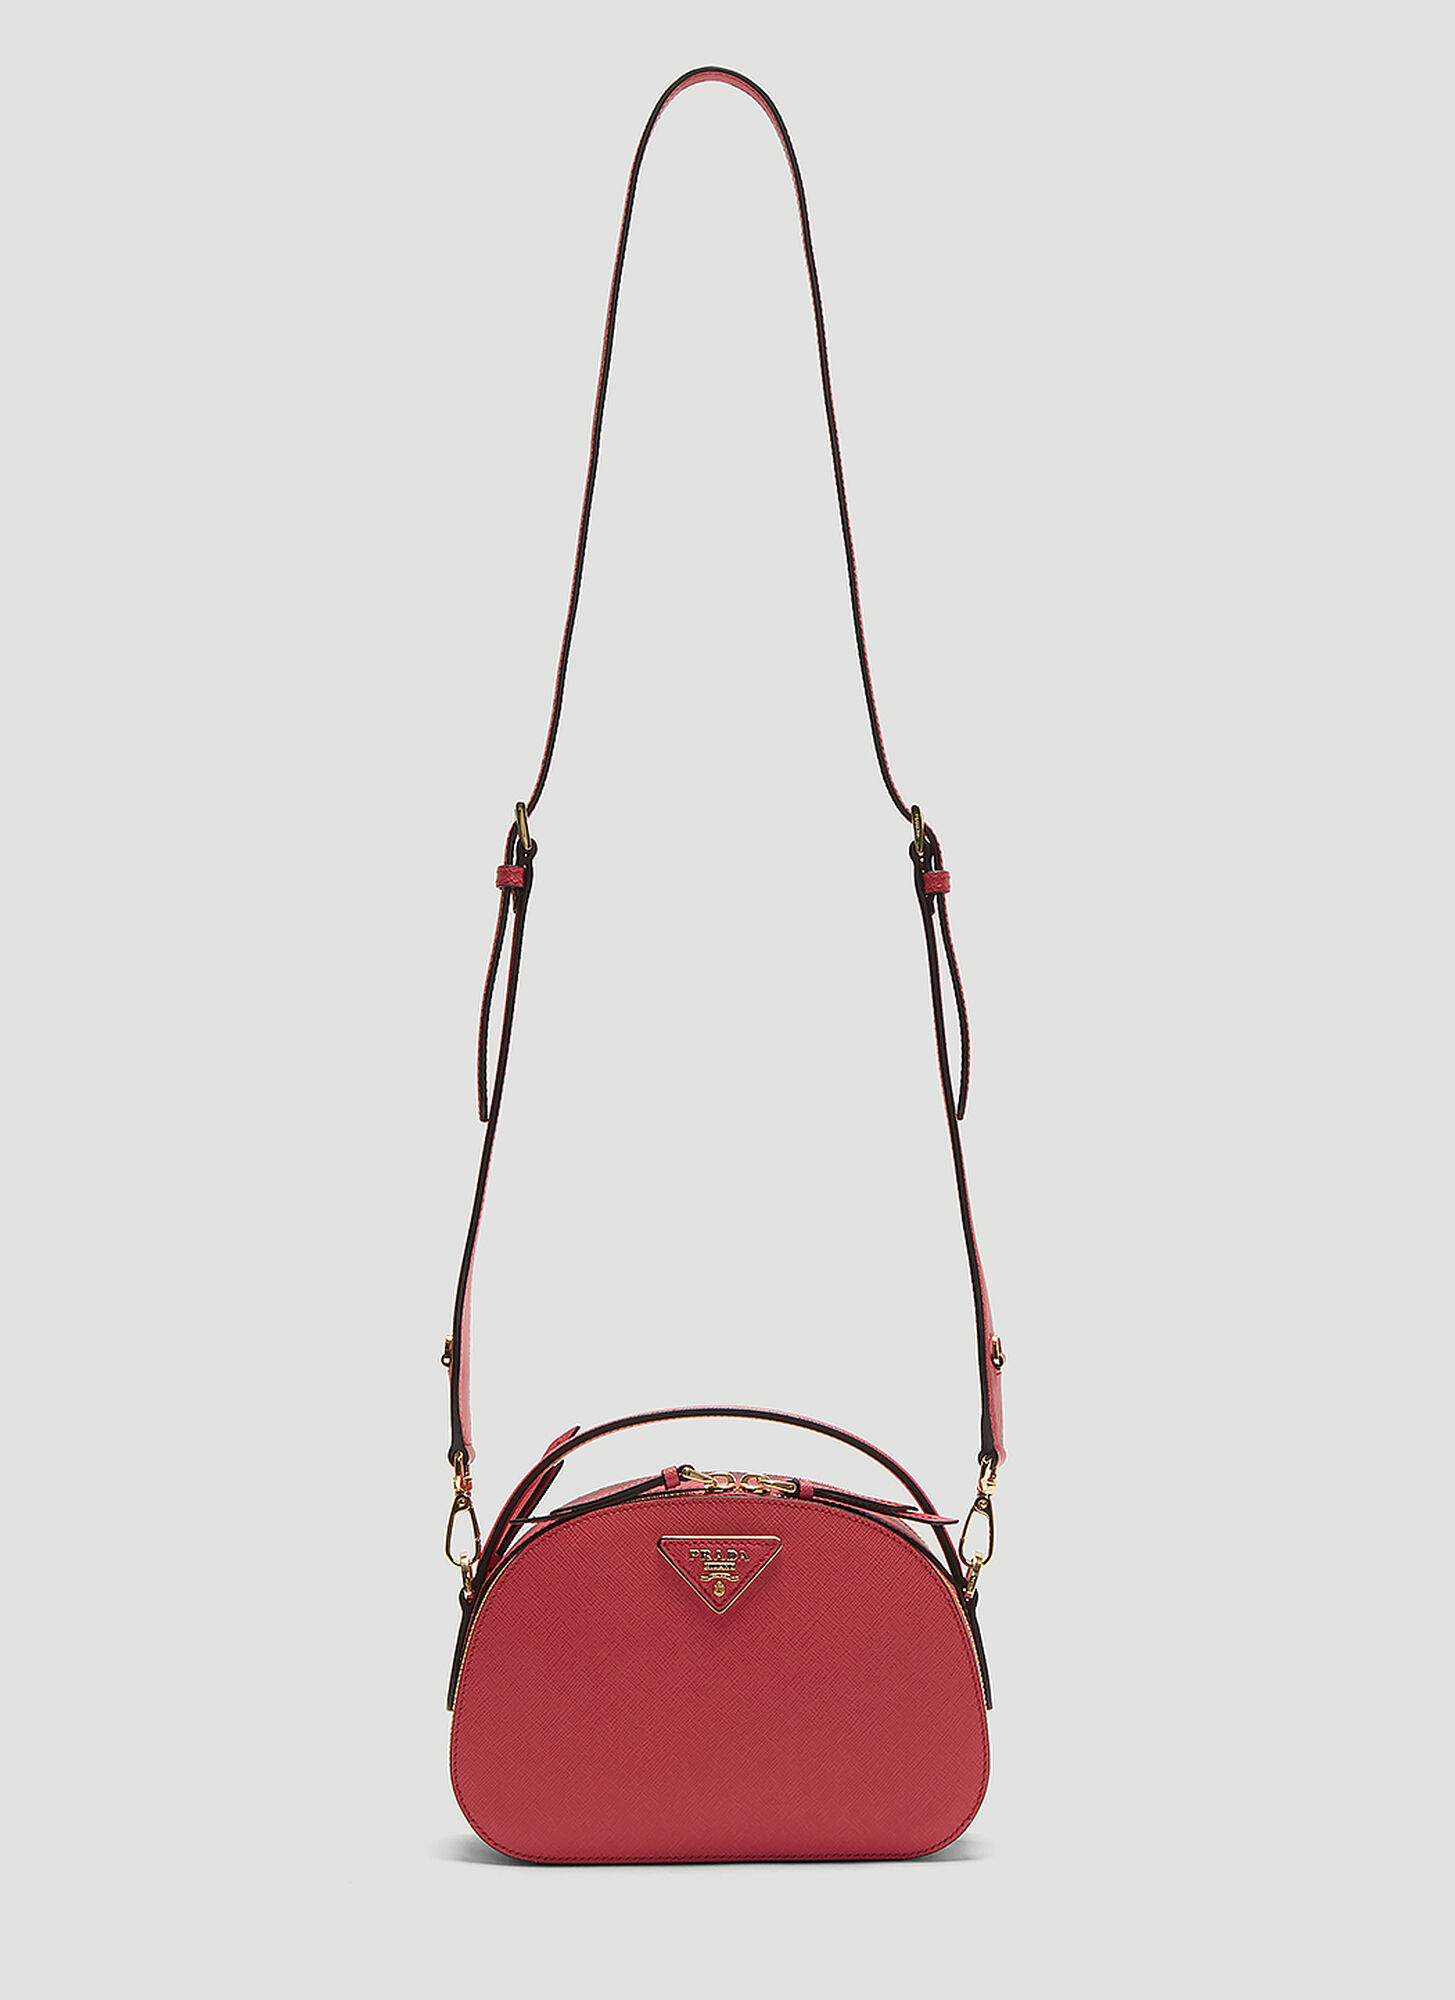 Prada Odette Bag in Pink